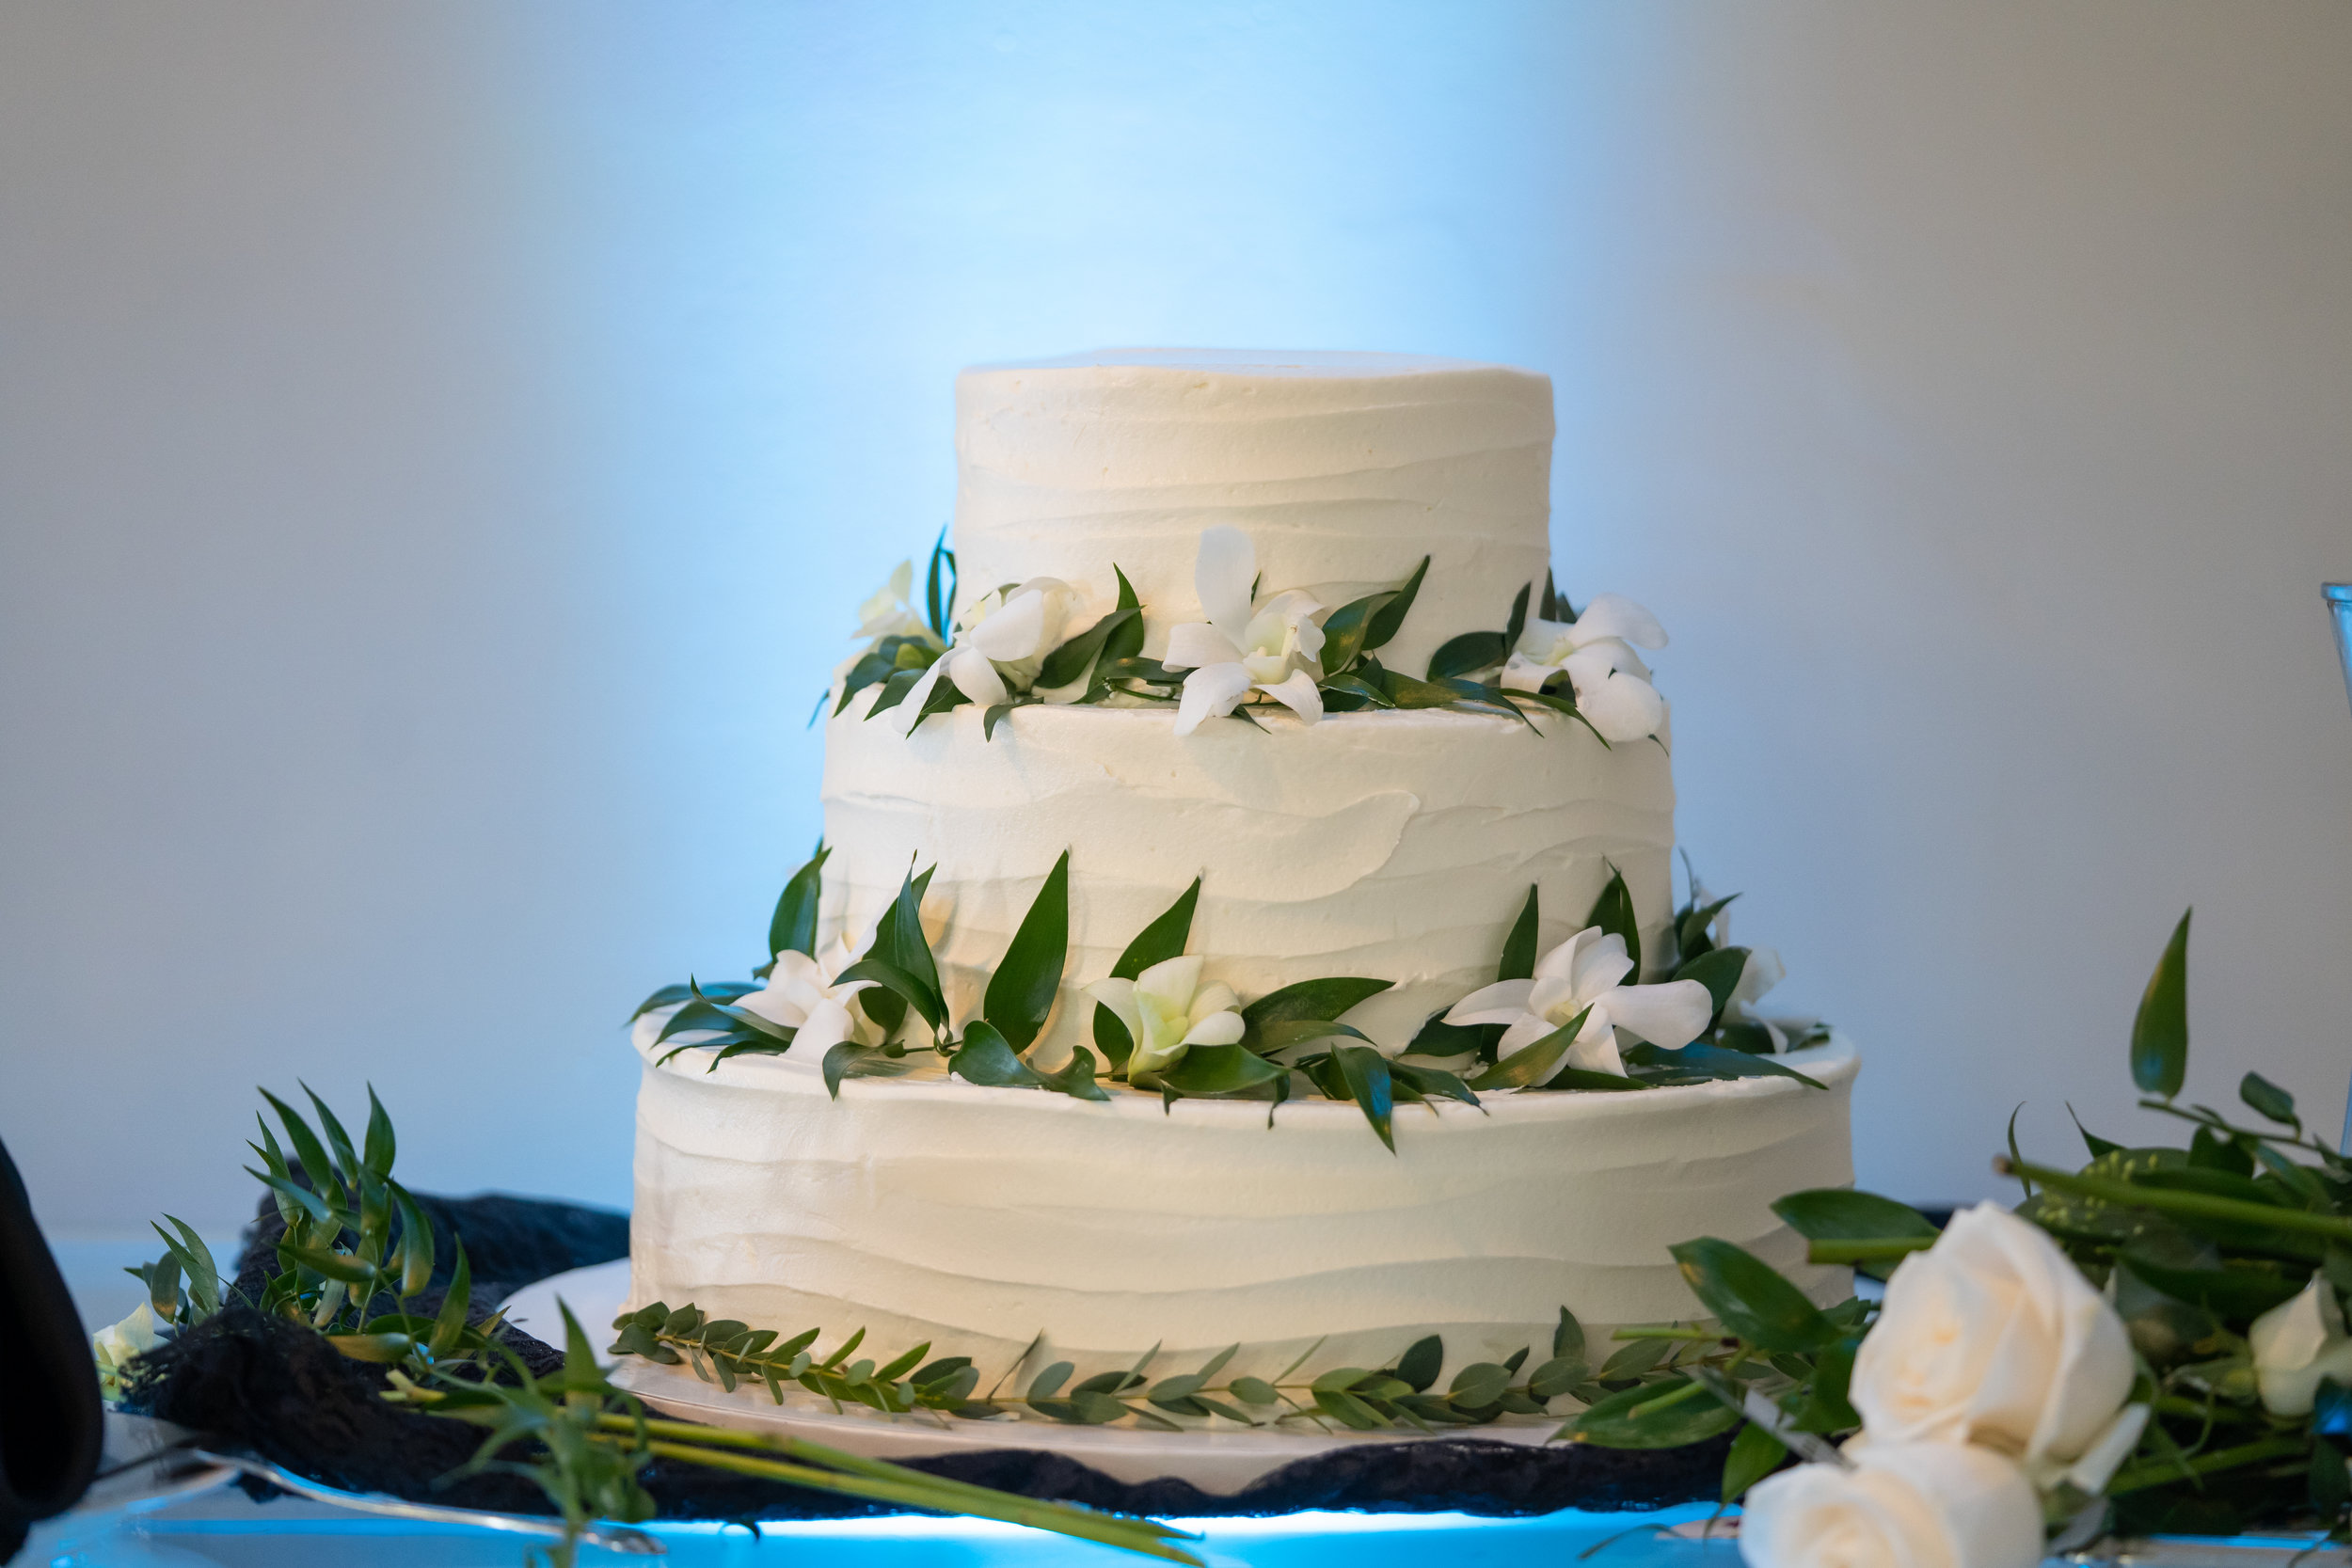 A simple and elegant three tiered cake completed the decor, adorned with delicate white orchids and more greenery.